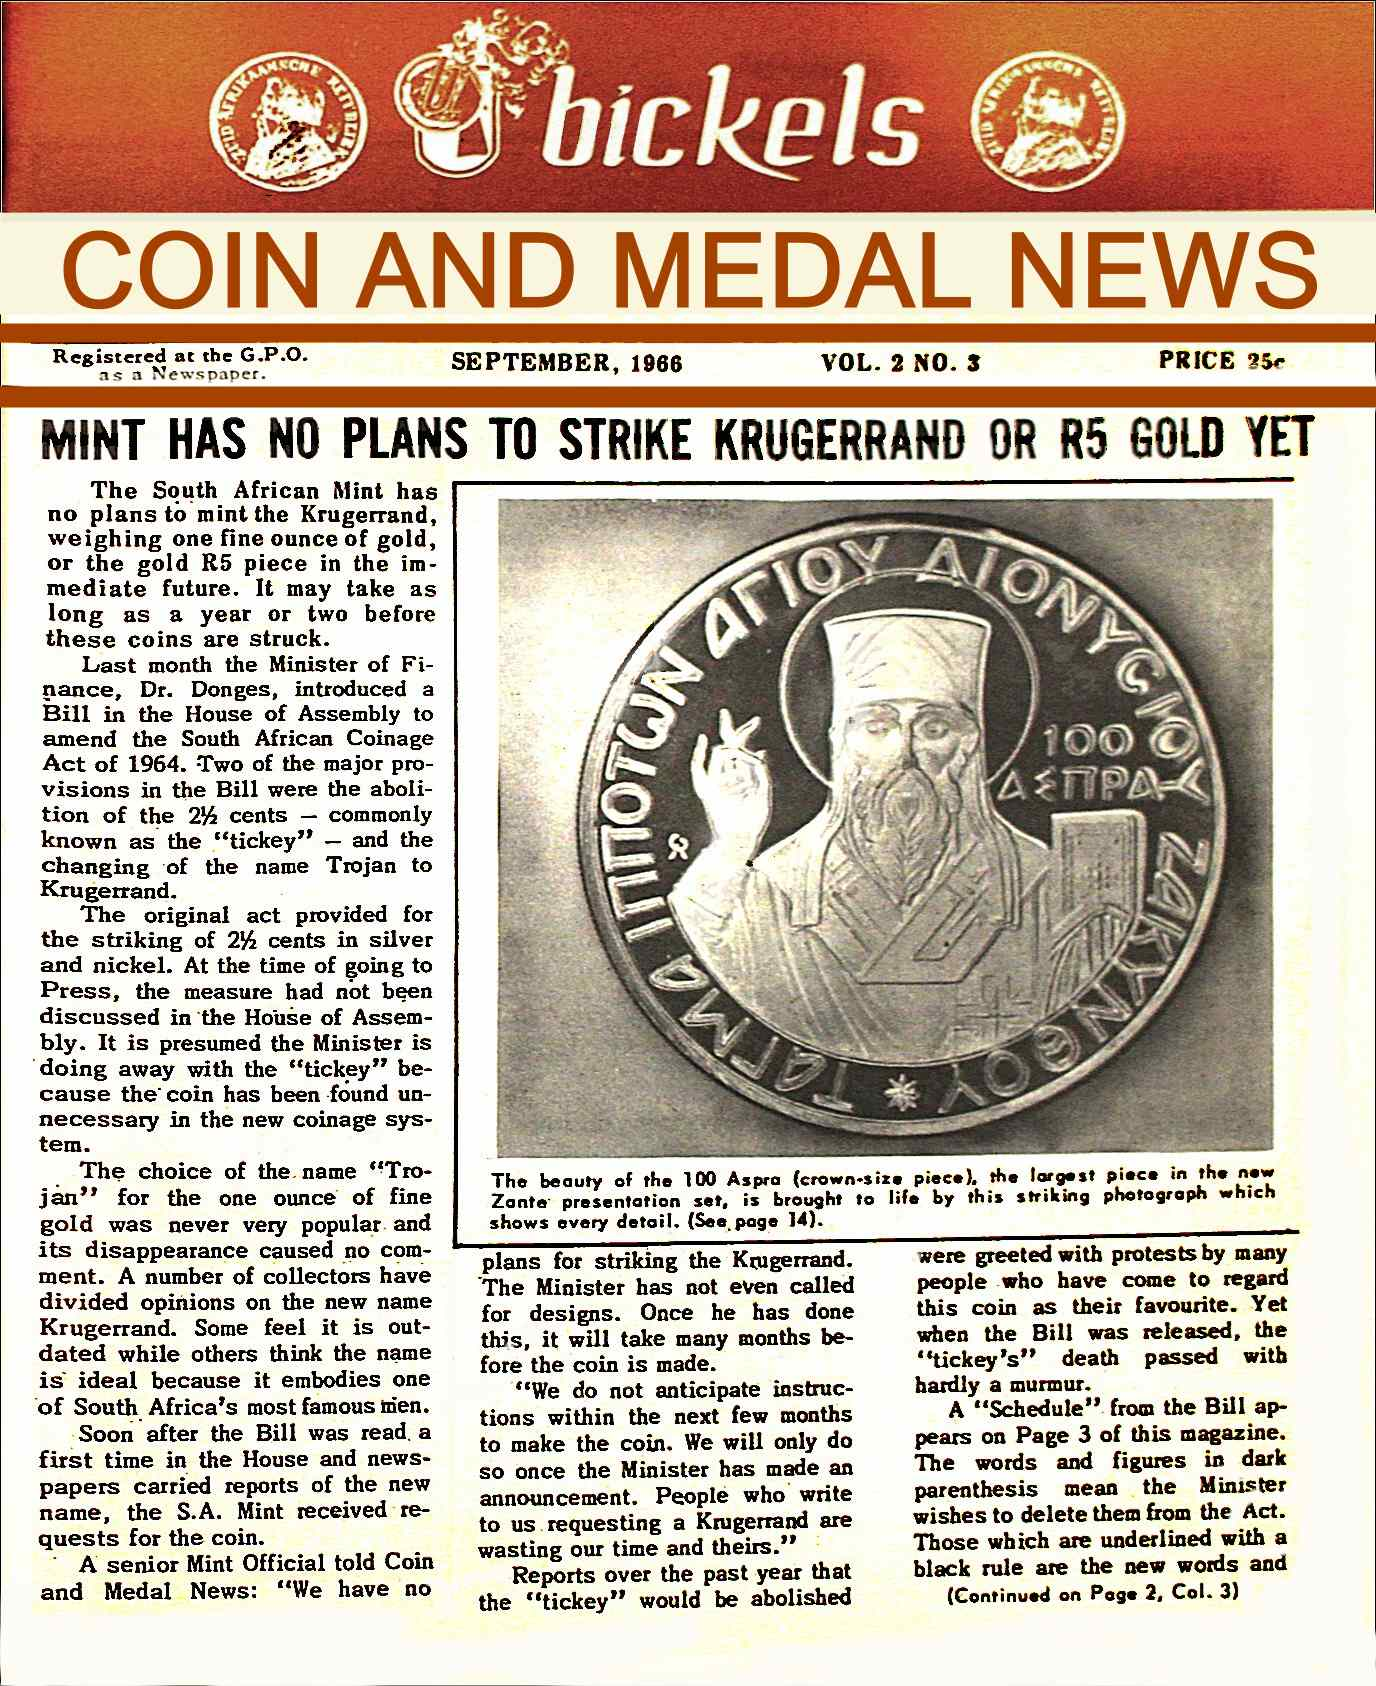 Bickels Coin & Medal News September 1966 Vol 2 No 3